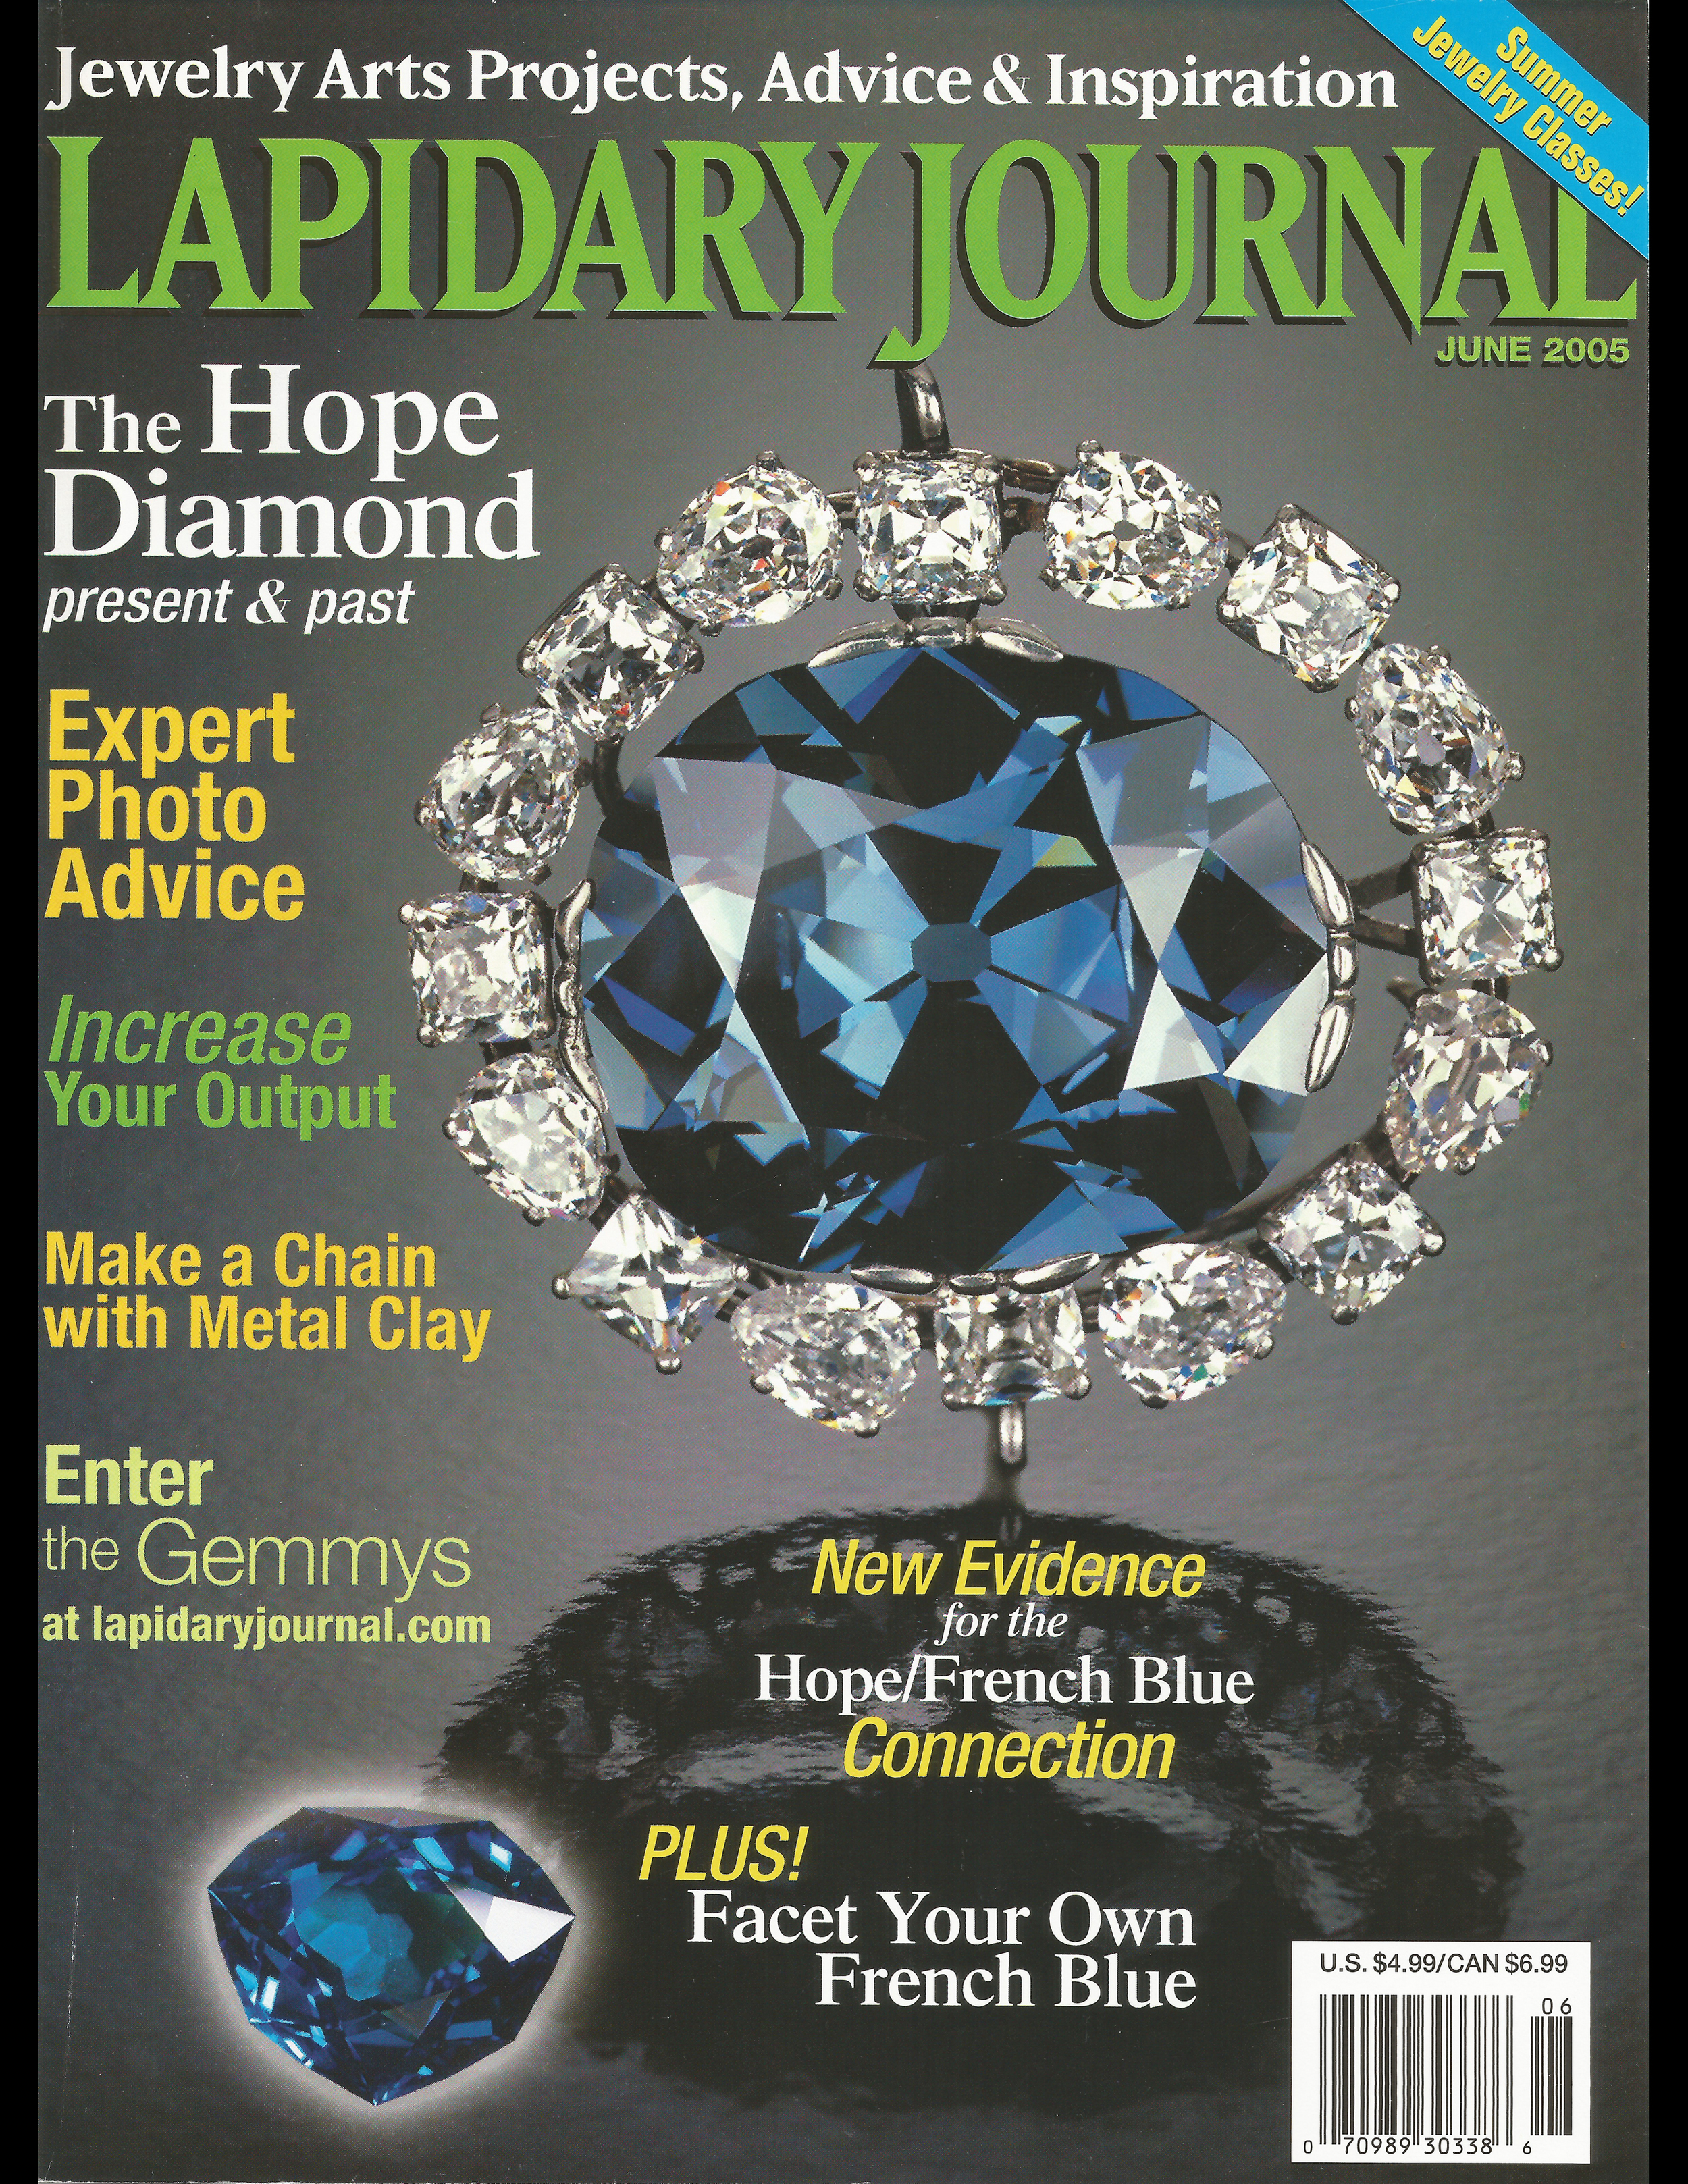 LAPIDARY JOURNAL COVER.jpeg